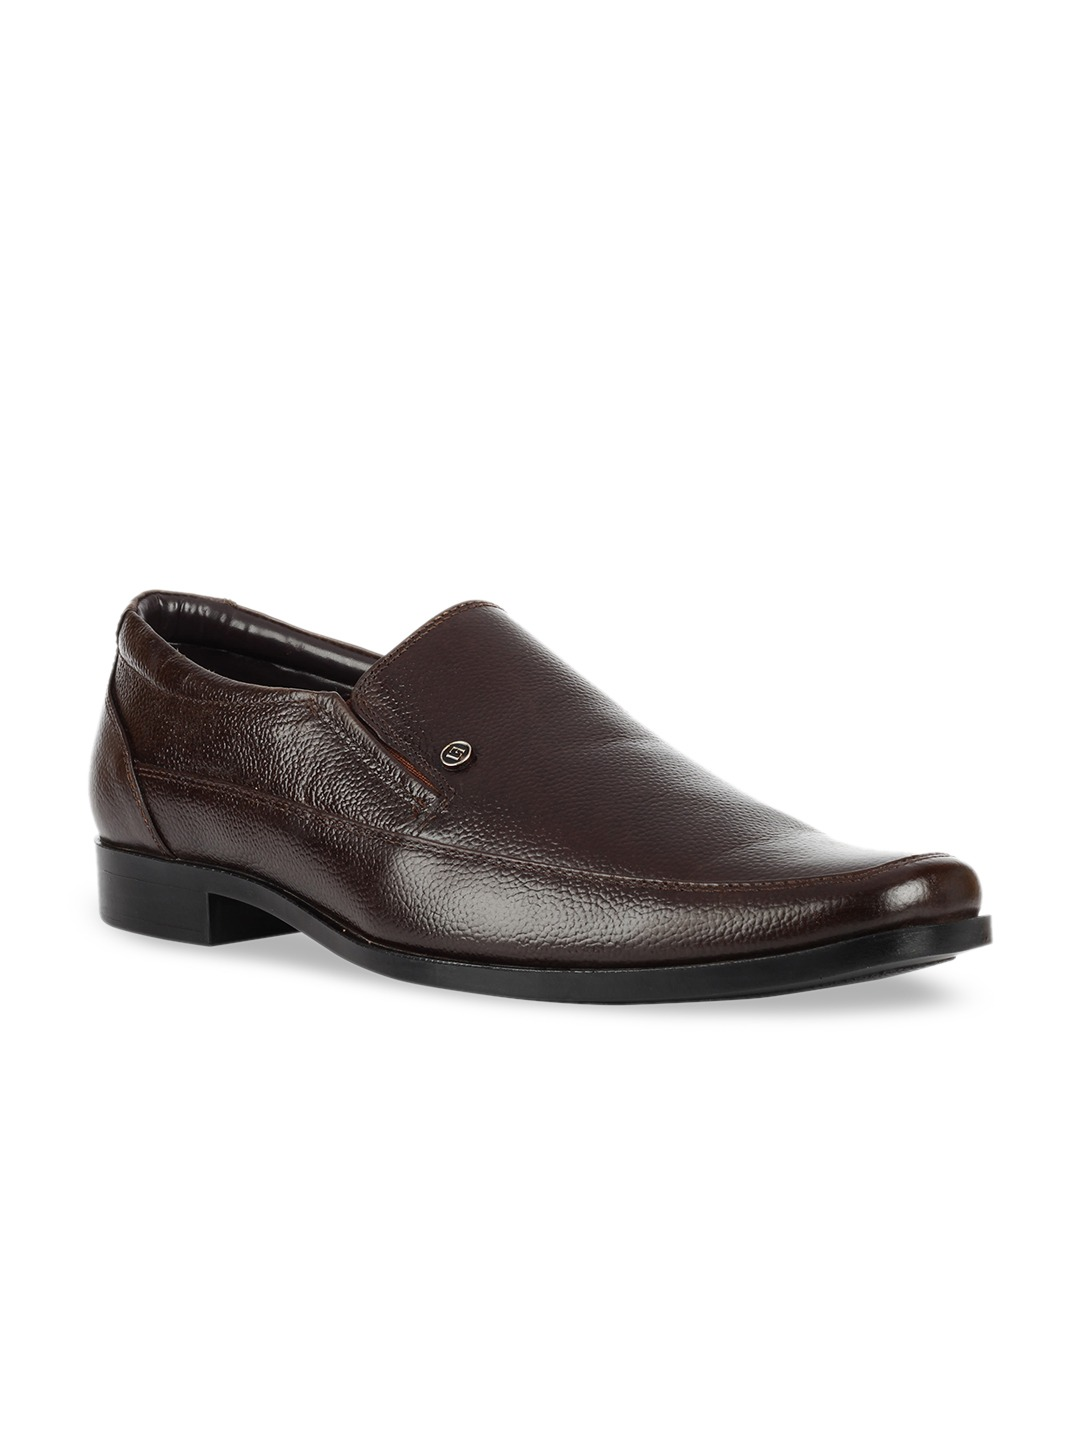 Brown Leather Formal  Slip-On Shoes